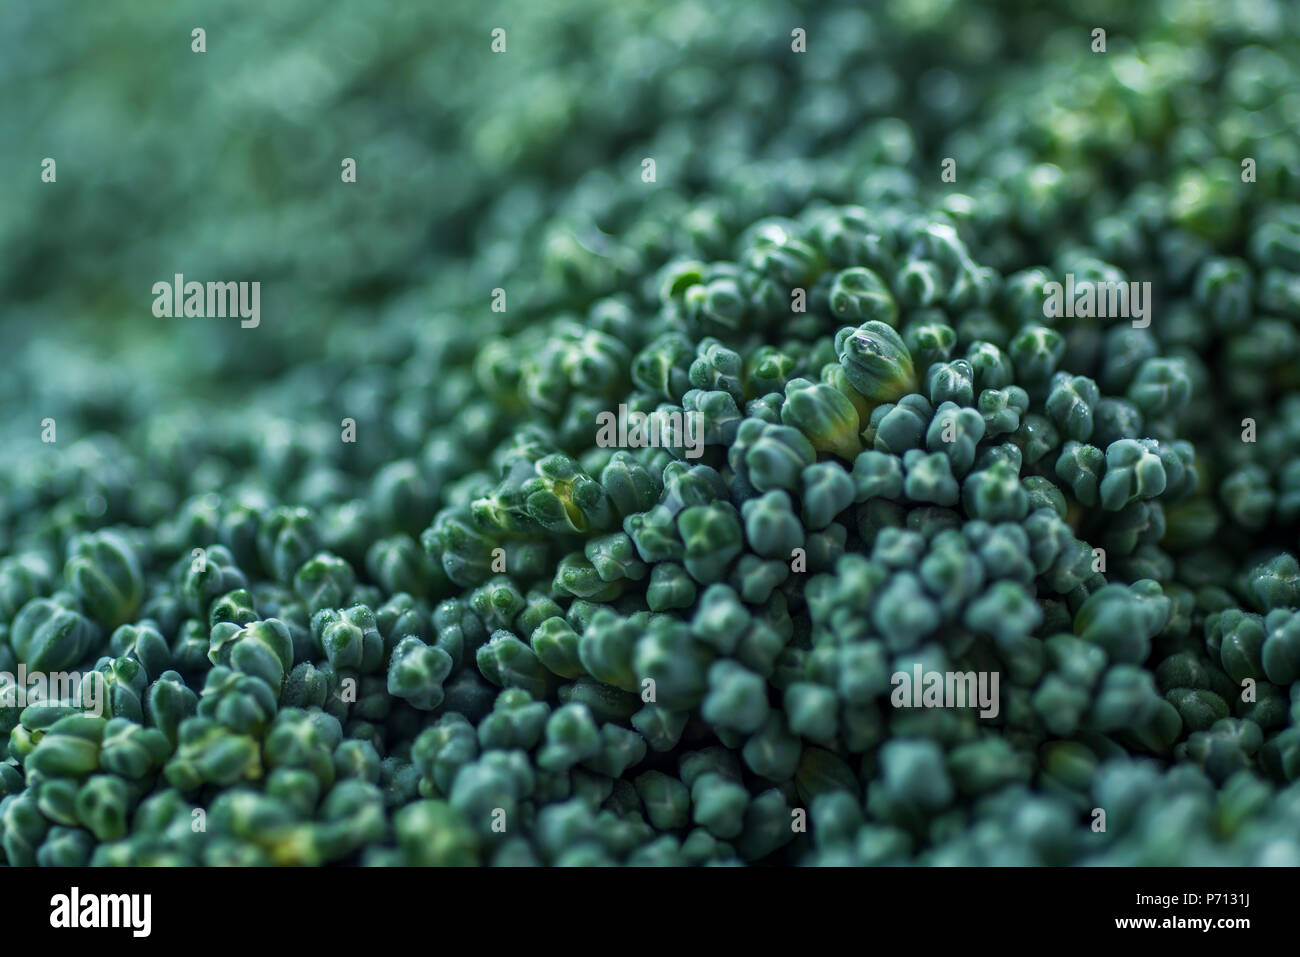 closeup of a stem of raw broccoli, made with a macro lens - Stock Image